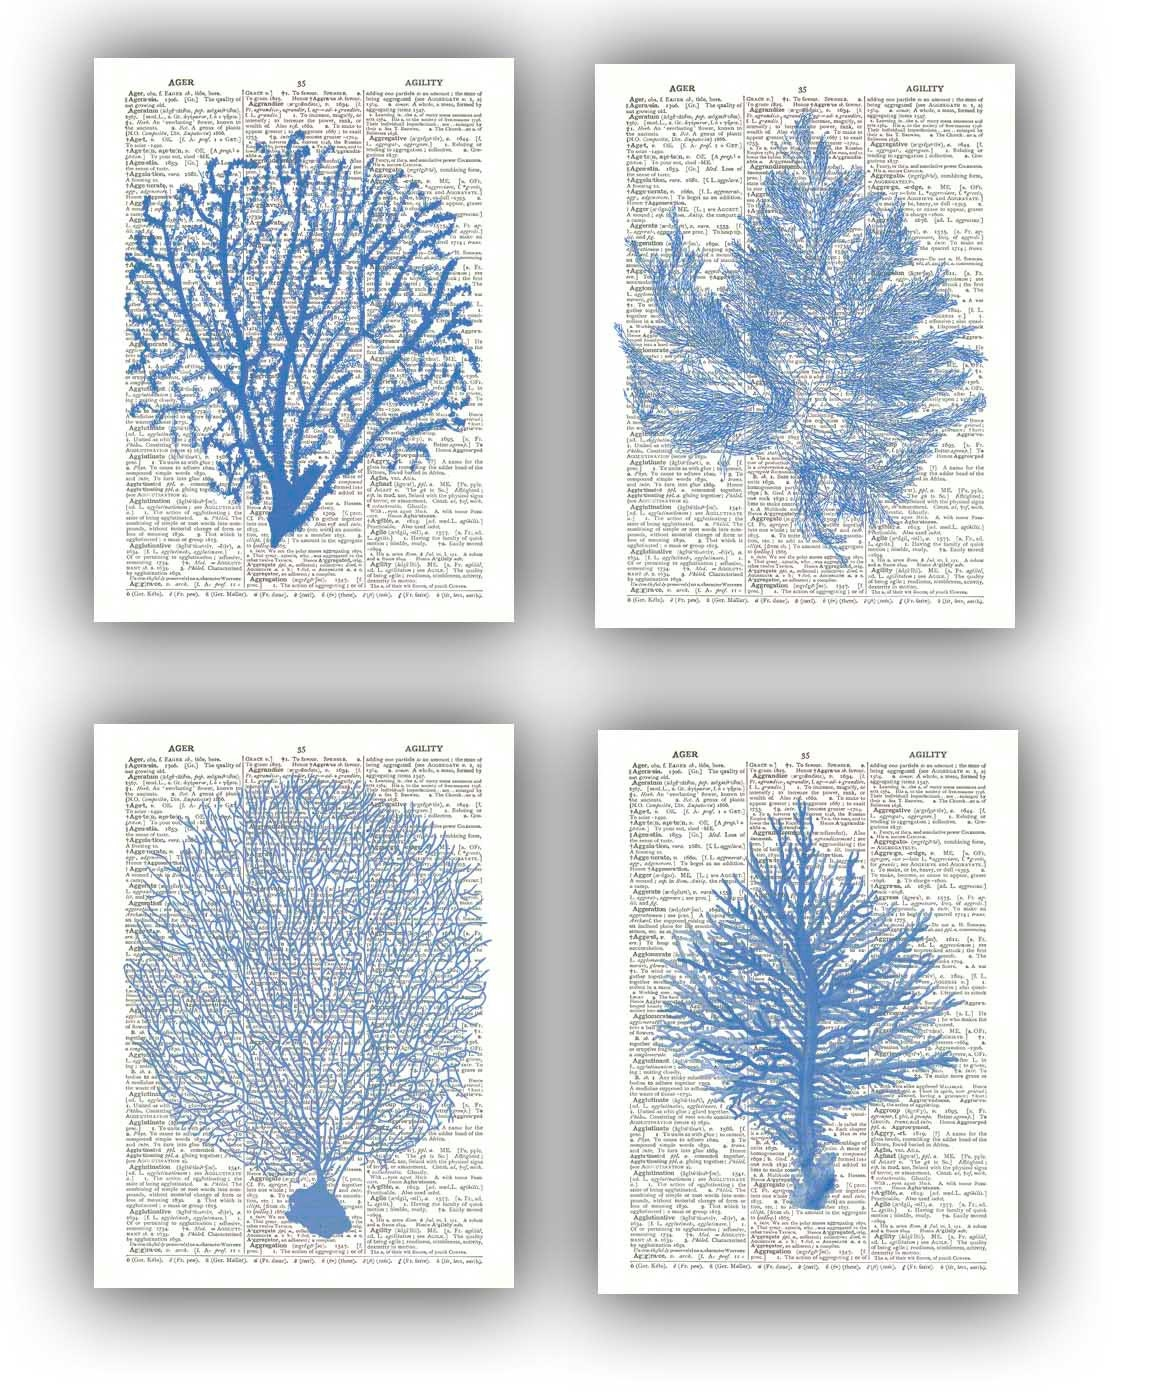 Ocean Decor For Bathroom: Seafan Ocean Blue Prints Sea Fan Sea Grass Coral Nautical